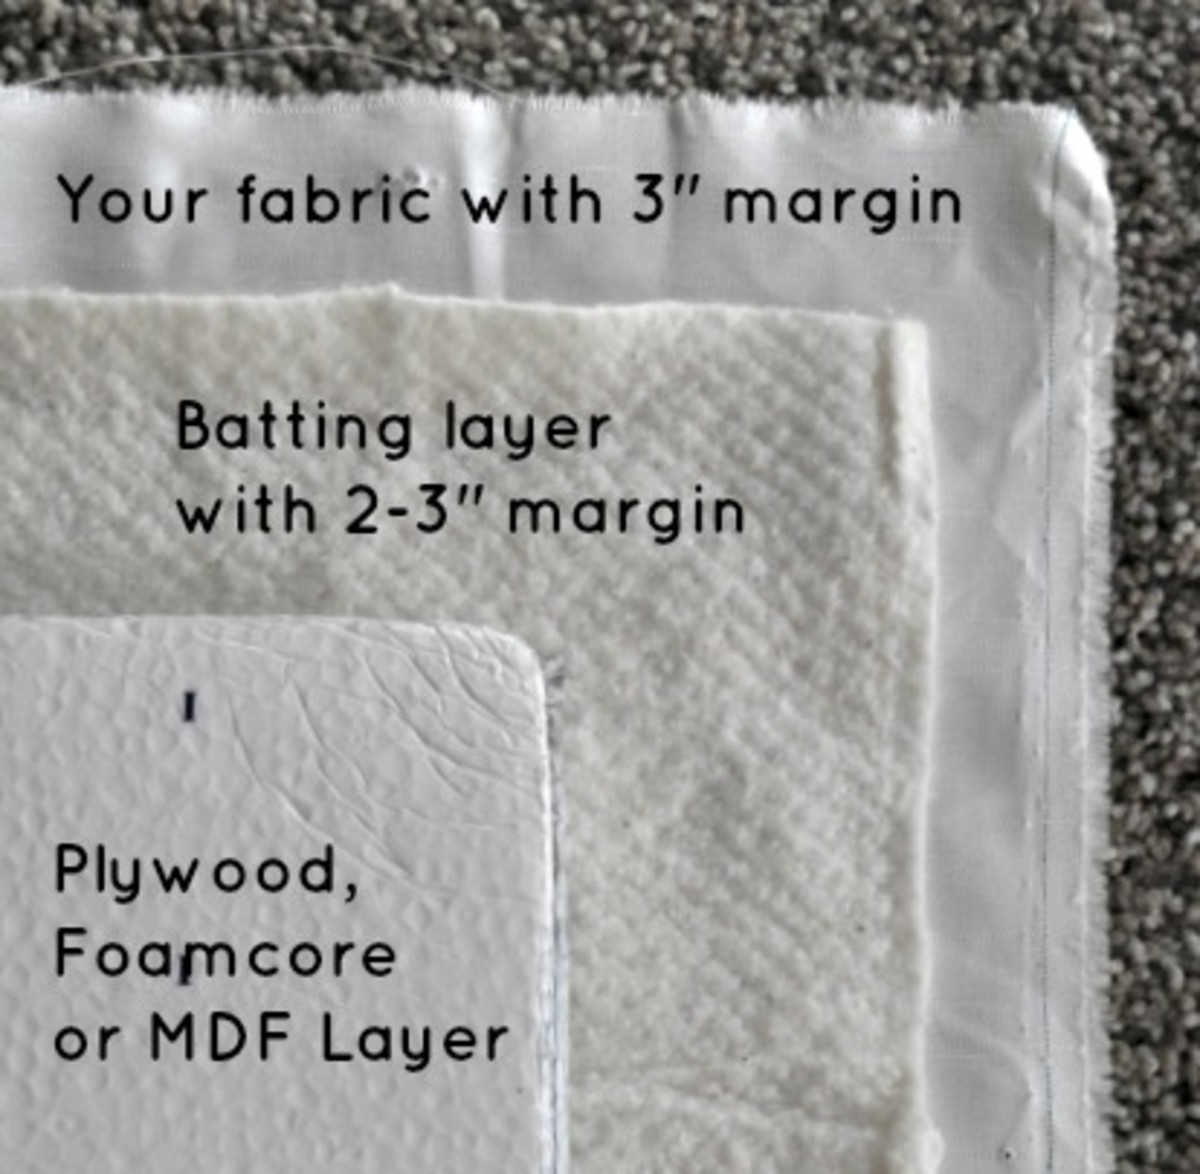 Giant Fabric Board - Layering with Margins - TodaysMama.com